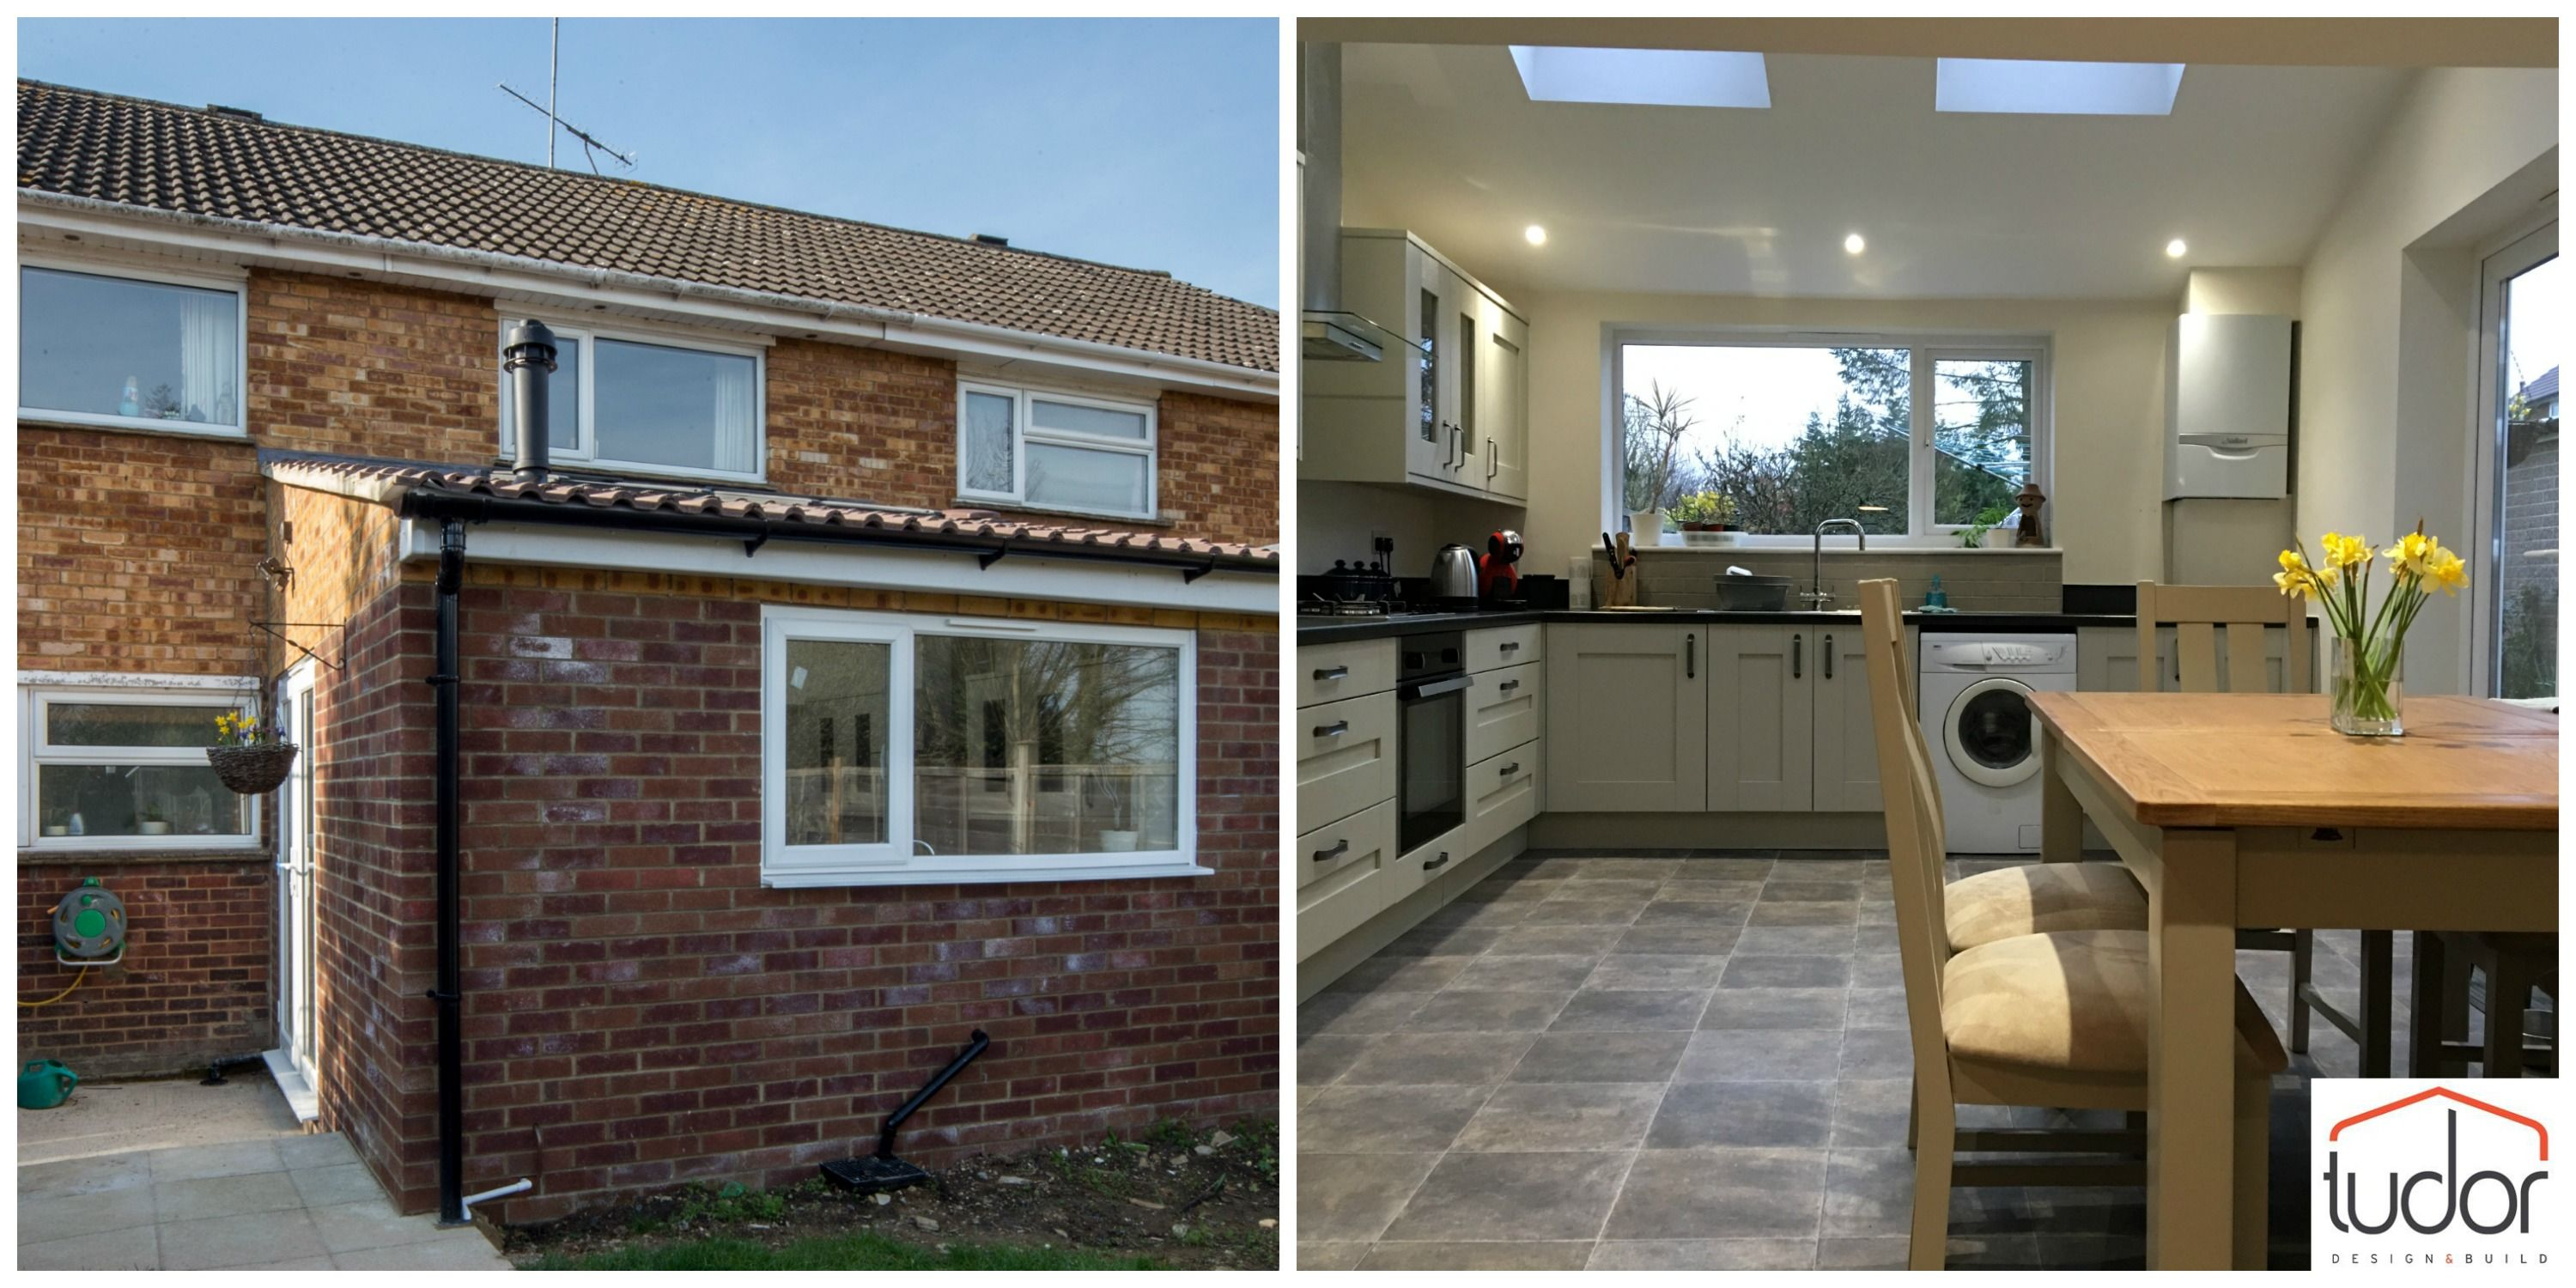 Small kitchen extension design, Terraced house kitchen extension ...